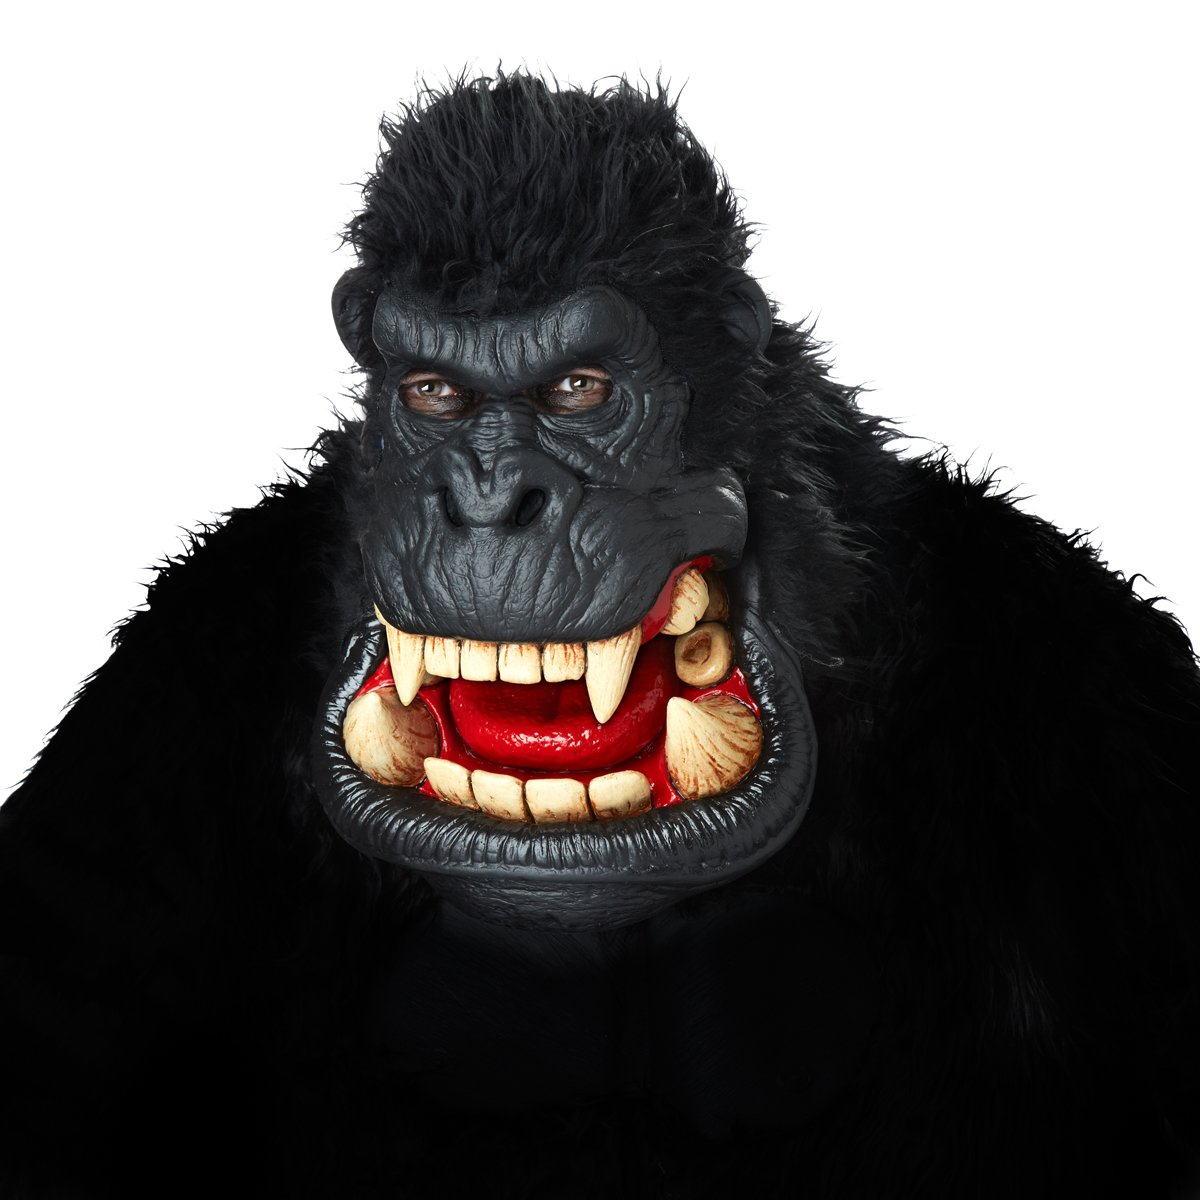 Standard Size: #60239 Killa Gorilla King Kong Ape Monkey Adult Costume Mask